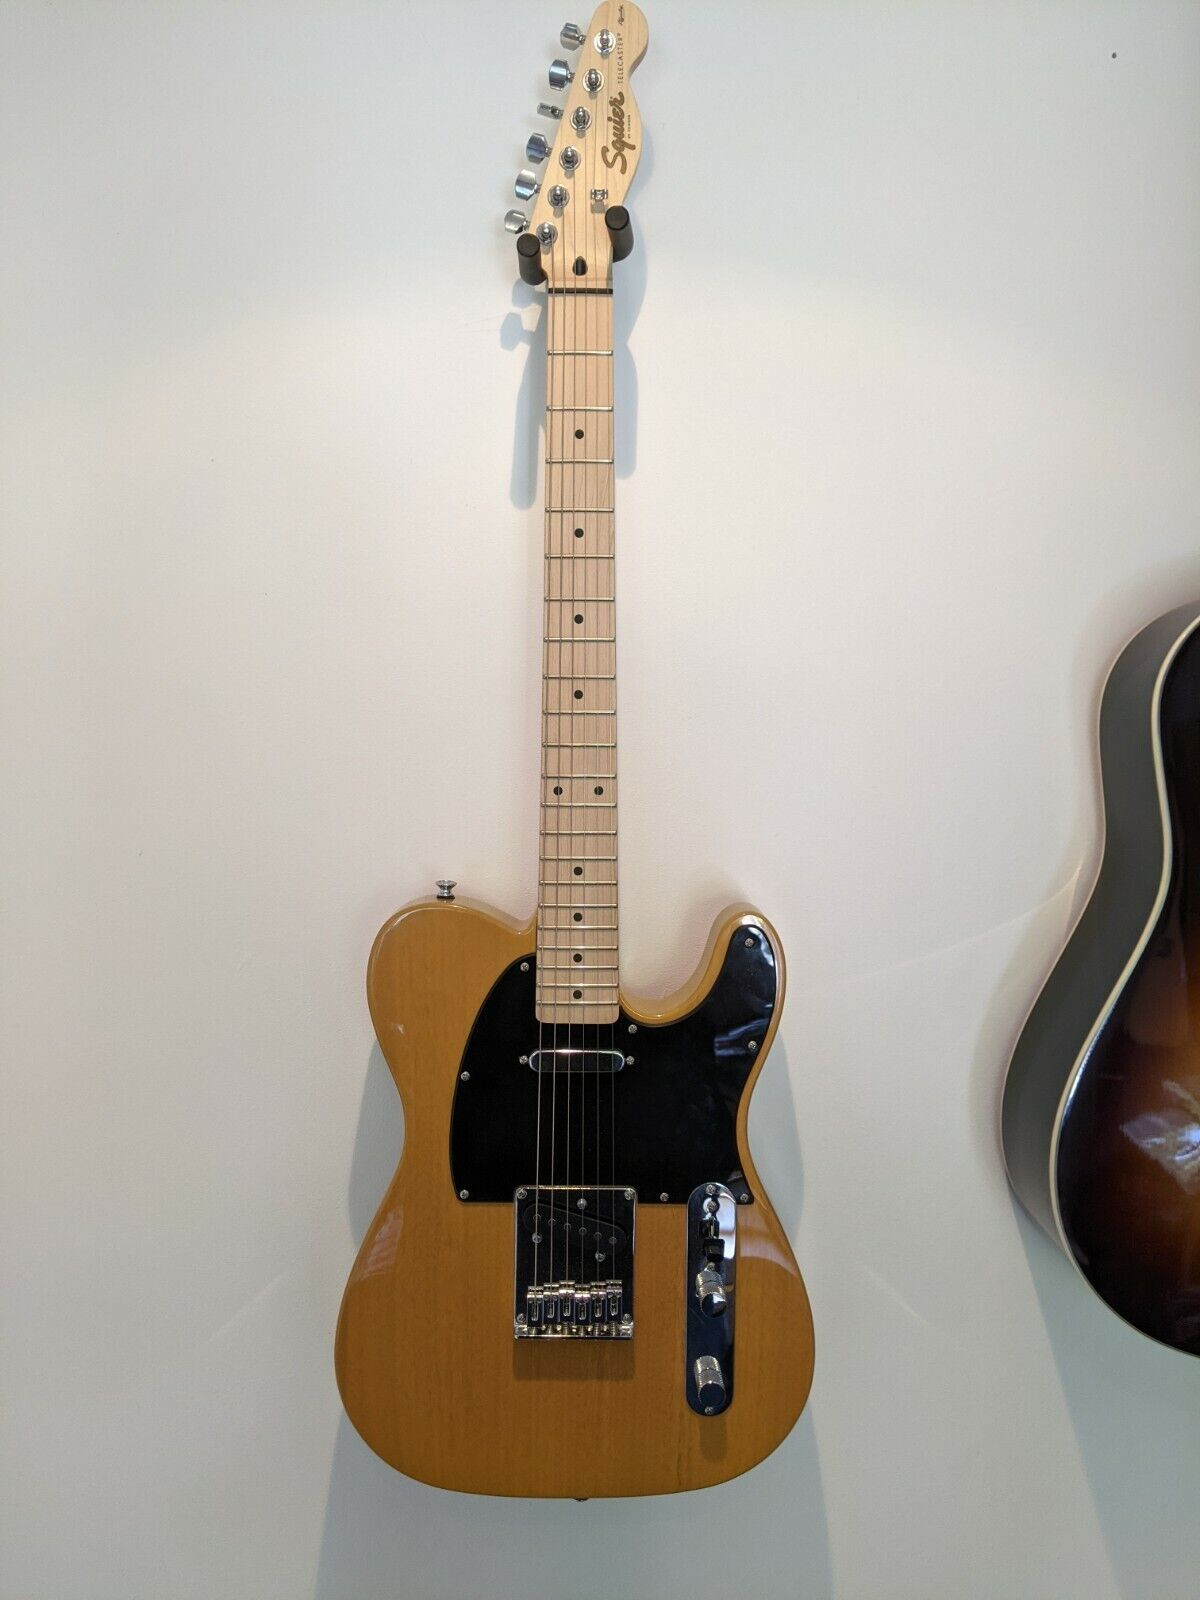 This Squier Telecaster electric guitar is for sale - Squier Affinity Telecaster Butterscotch Blonde Excellent Condition.